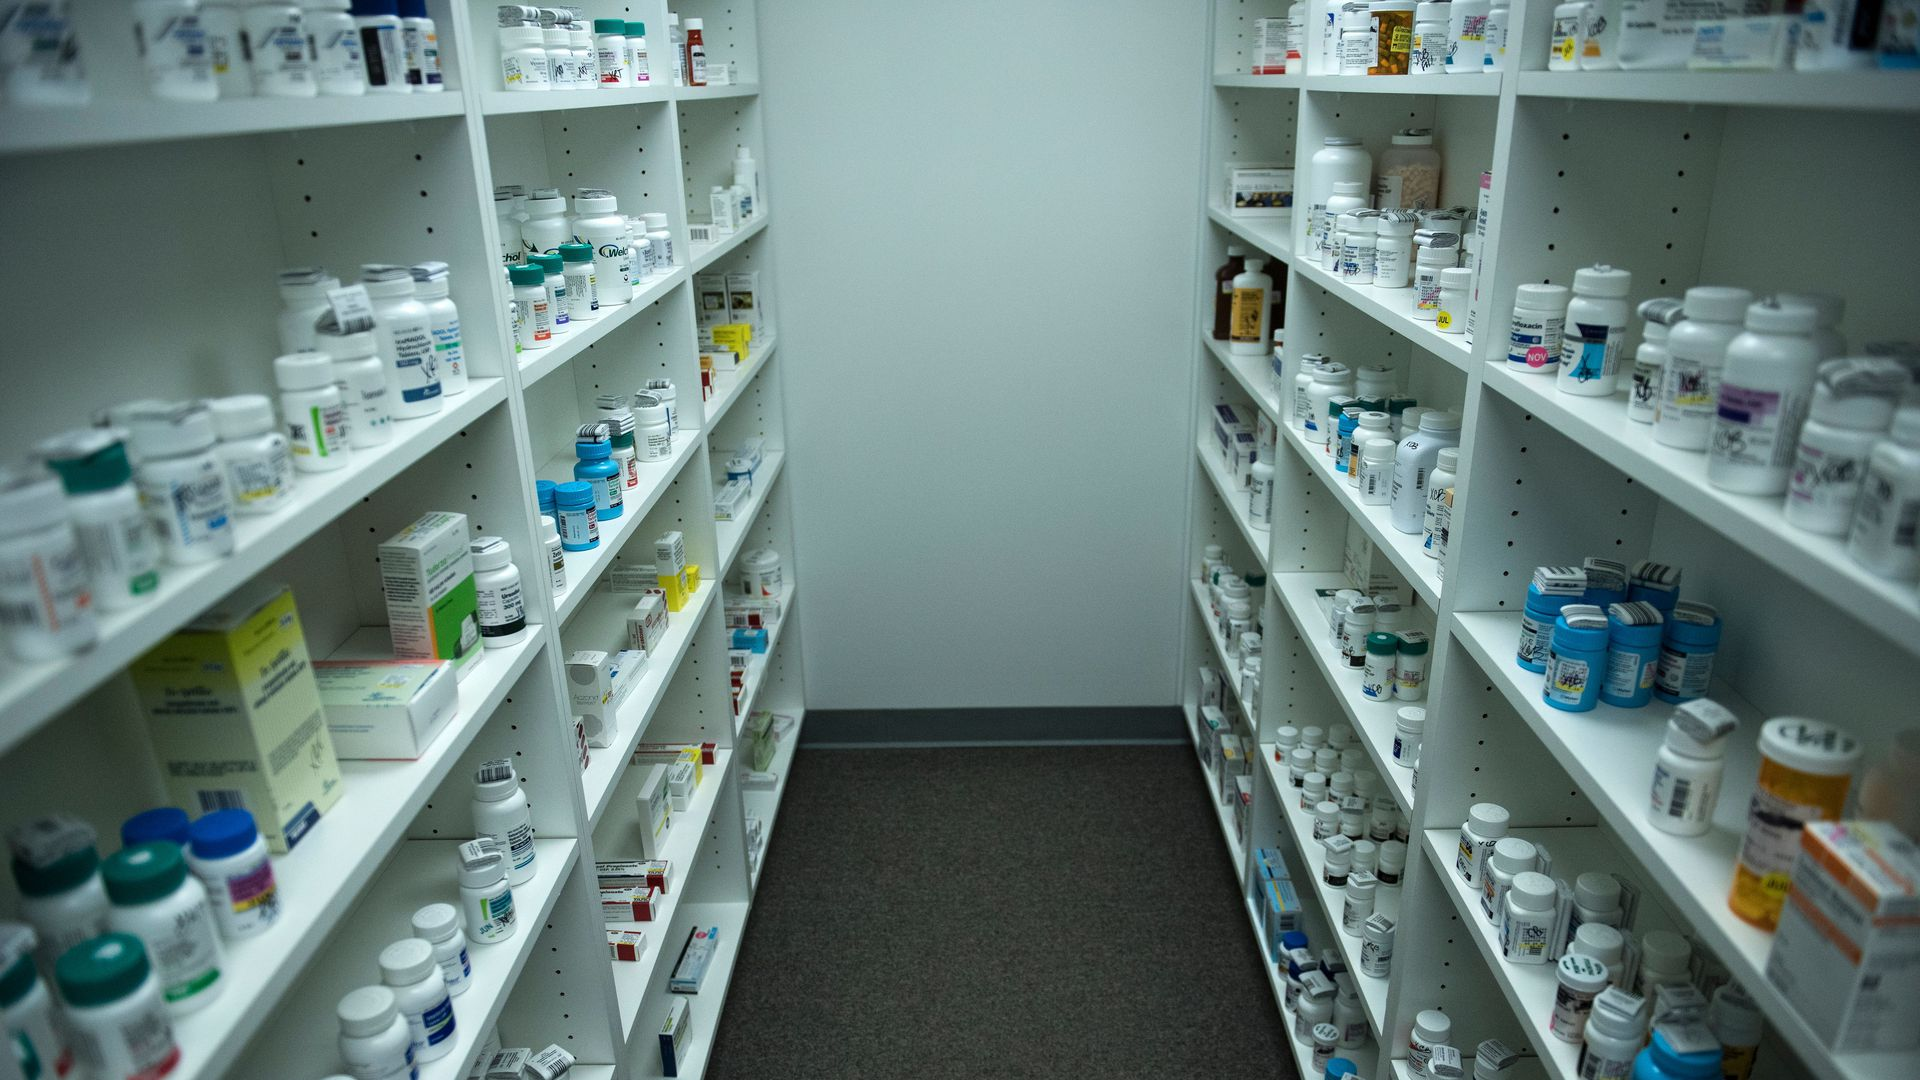 Shelves in a pharmacy are stocked with prescription drugs.